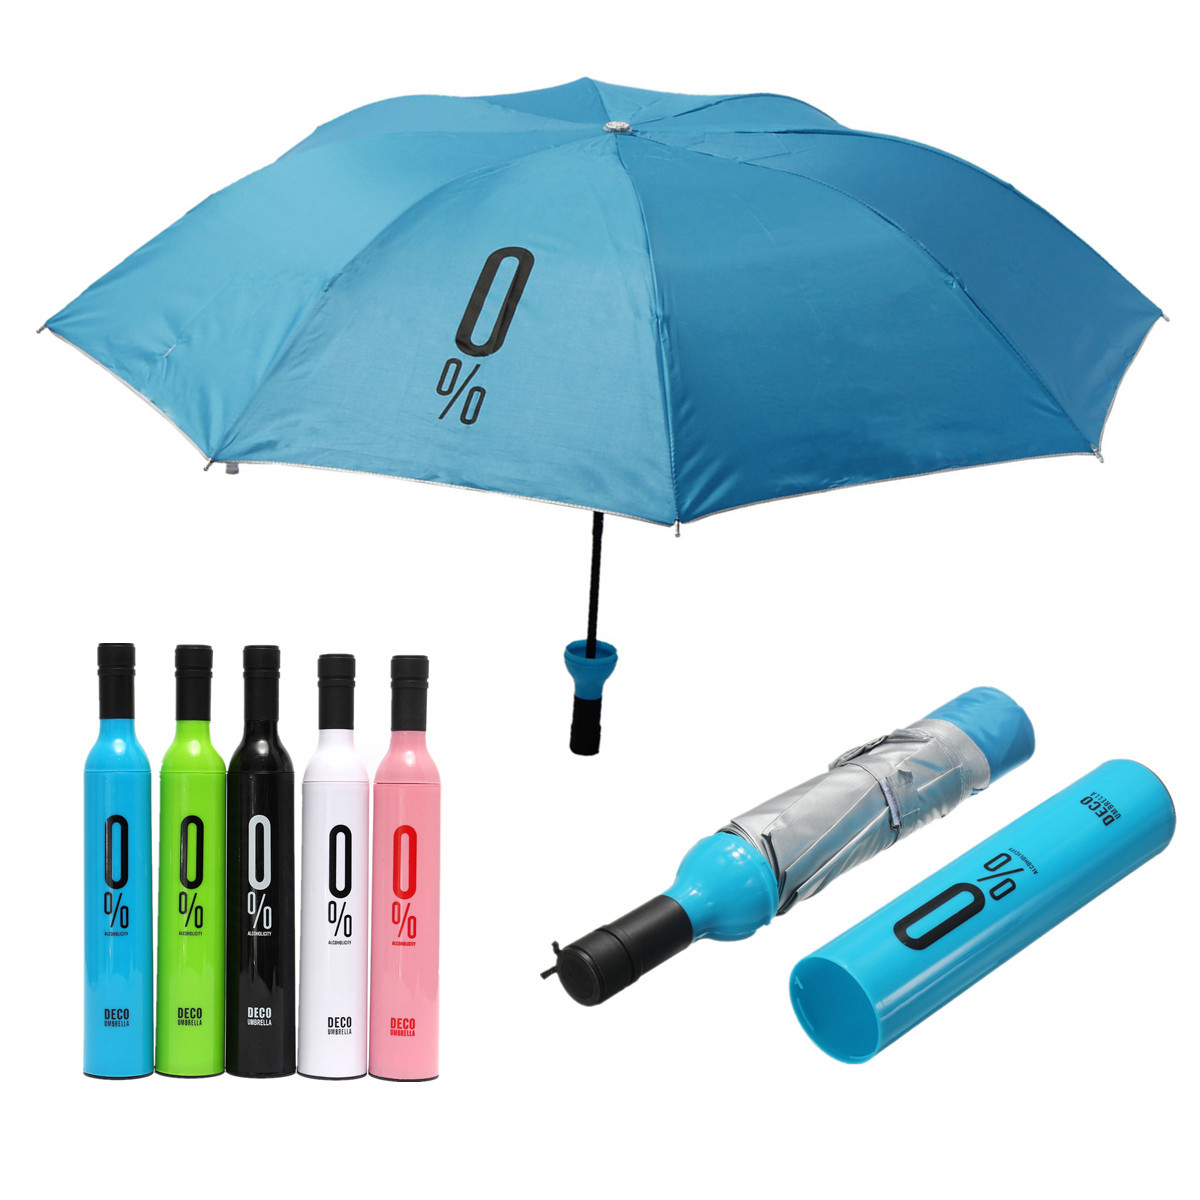 compact automatic umbrella fashion wine bottle folding anti uv parasol sun rain gear alex nld. Black Bedroom Furniture Sets. Home Design Ideas